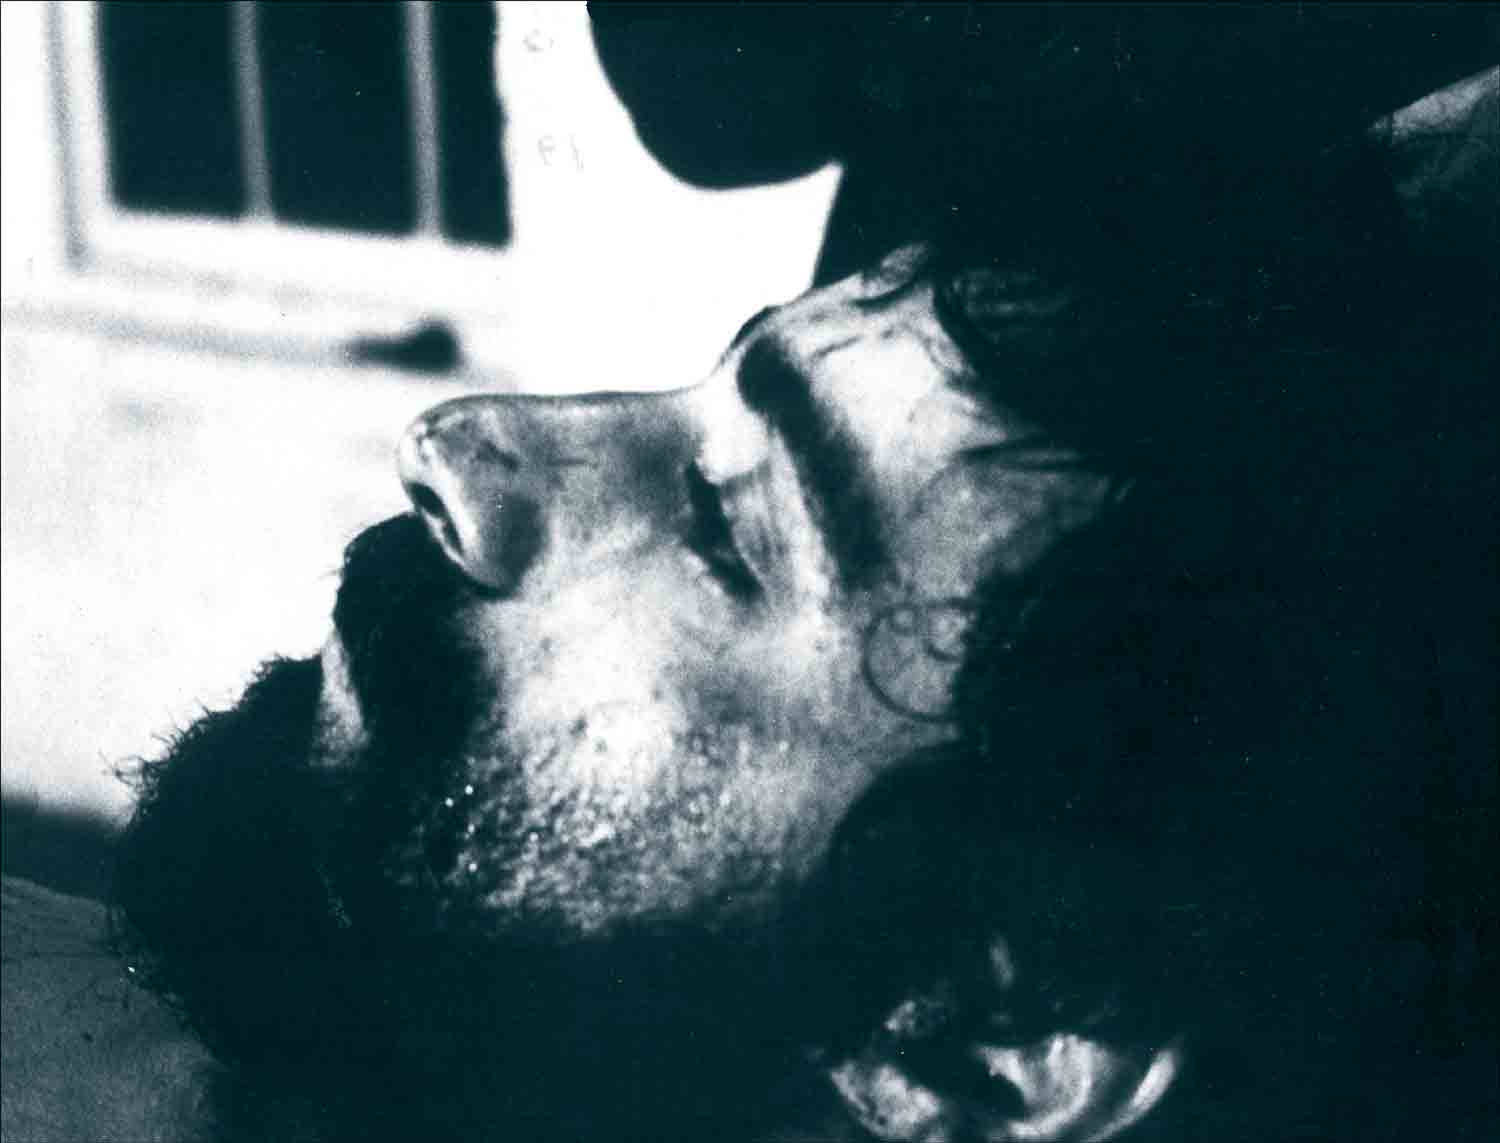 06_Films_Che-Is-Alive_3_1968.jpg